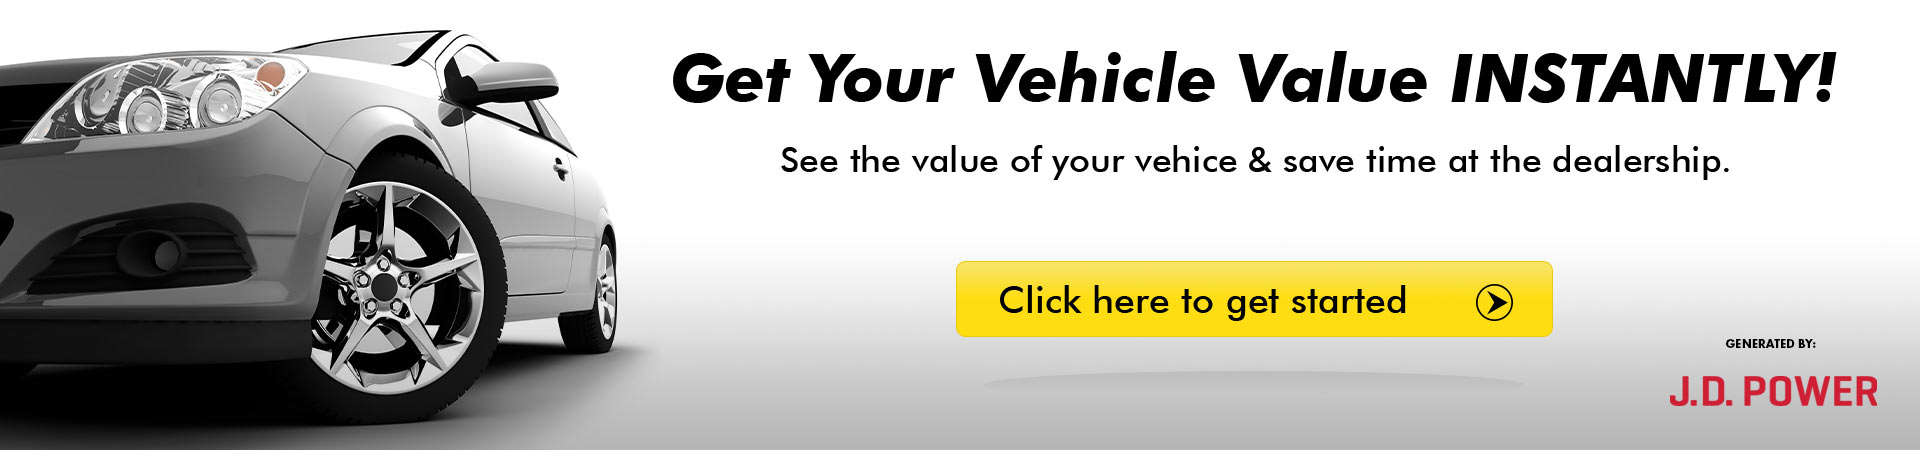 Get Your Vehicle Value Instantly